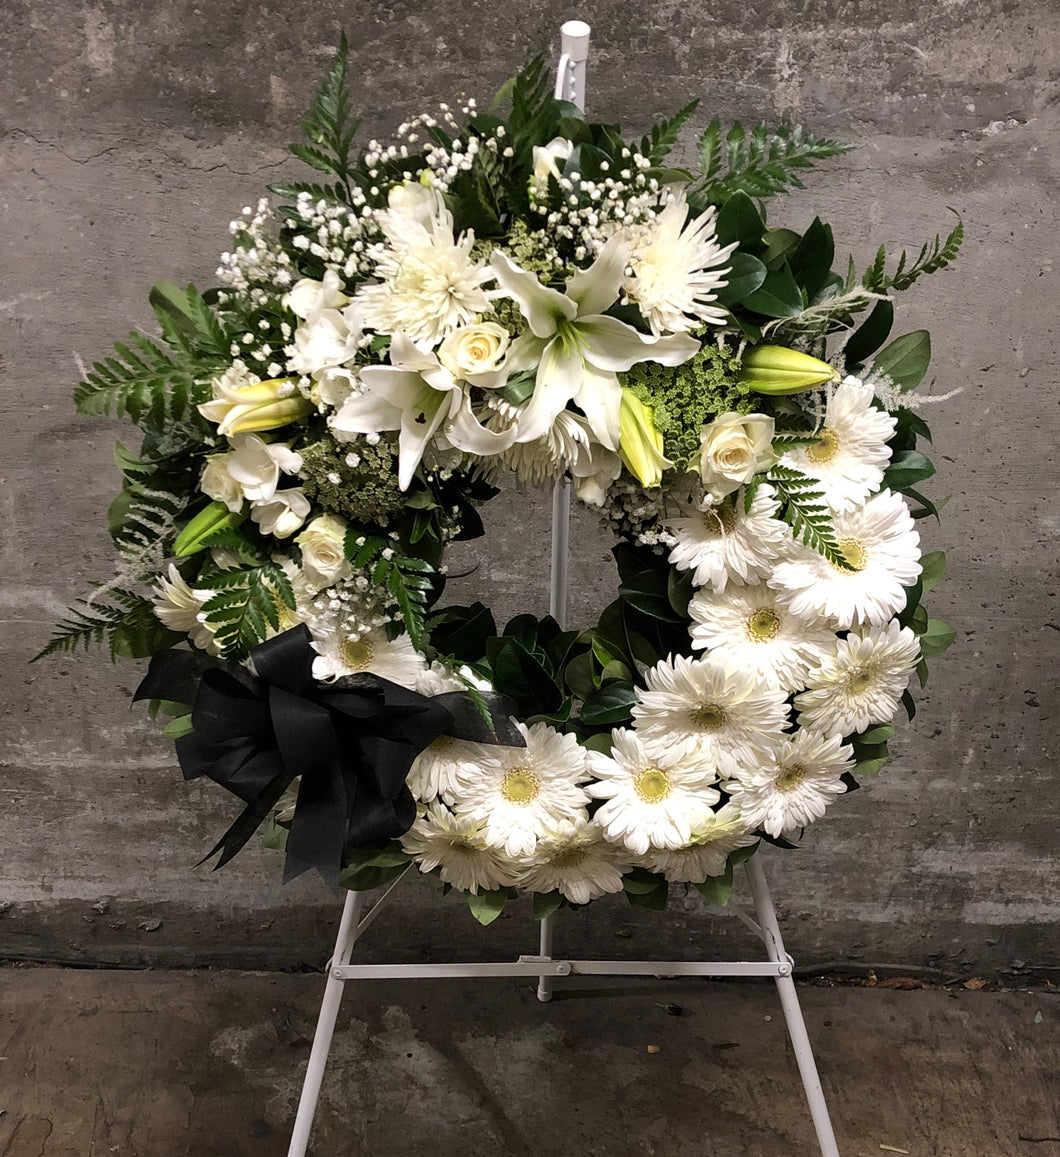 Classical white funeral wreath